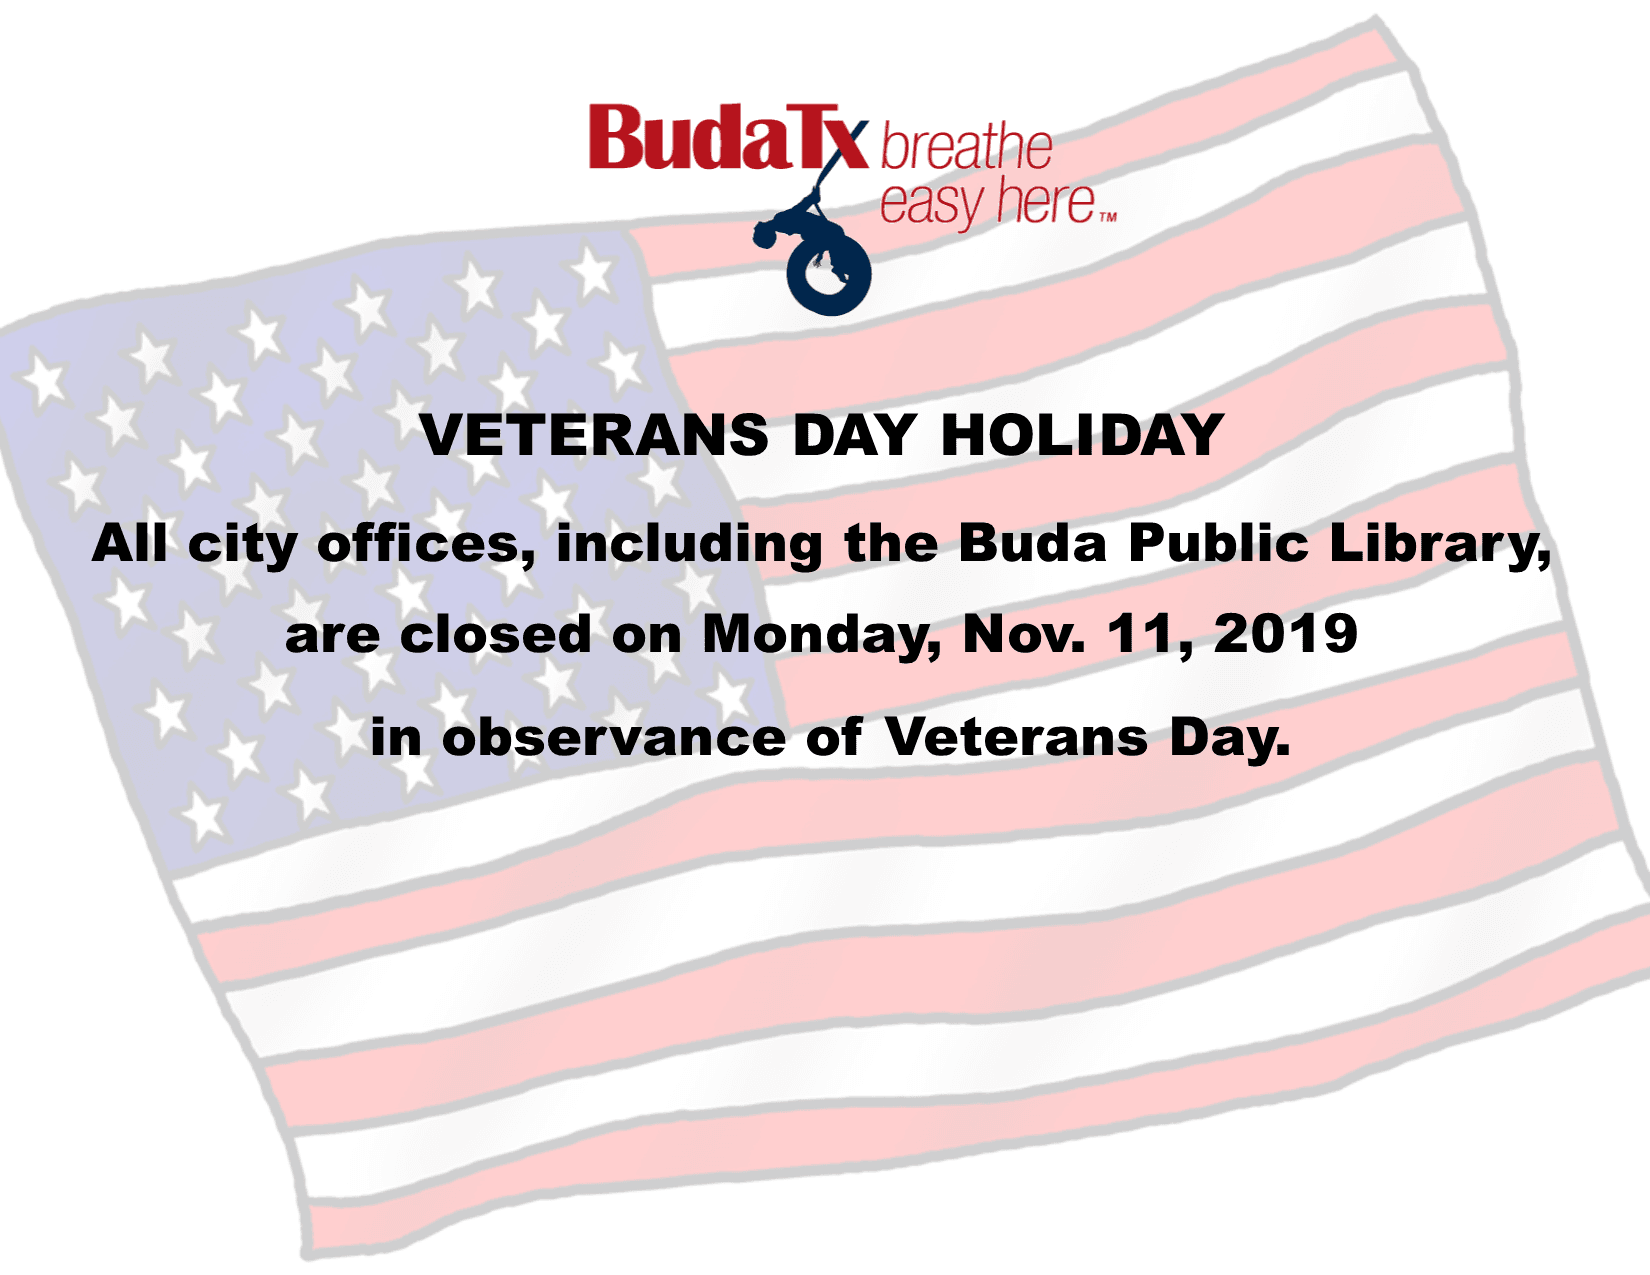 Veterans Day Holiday 2019